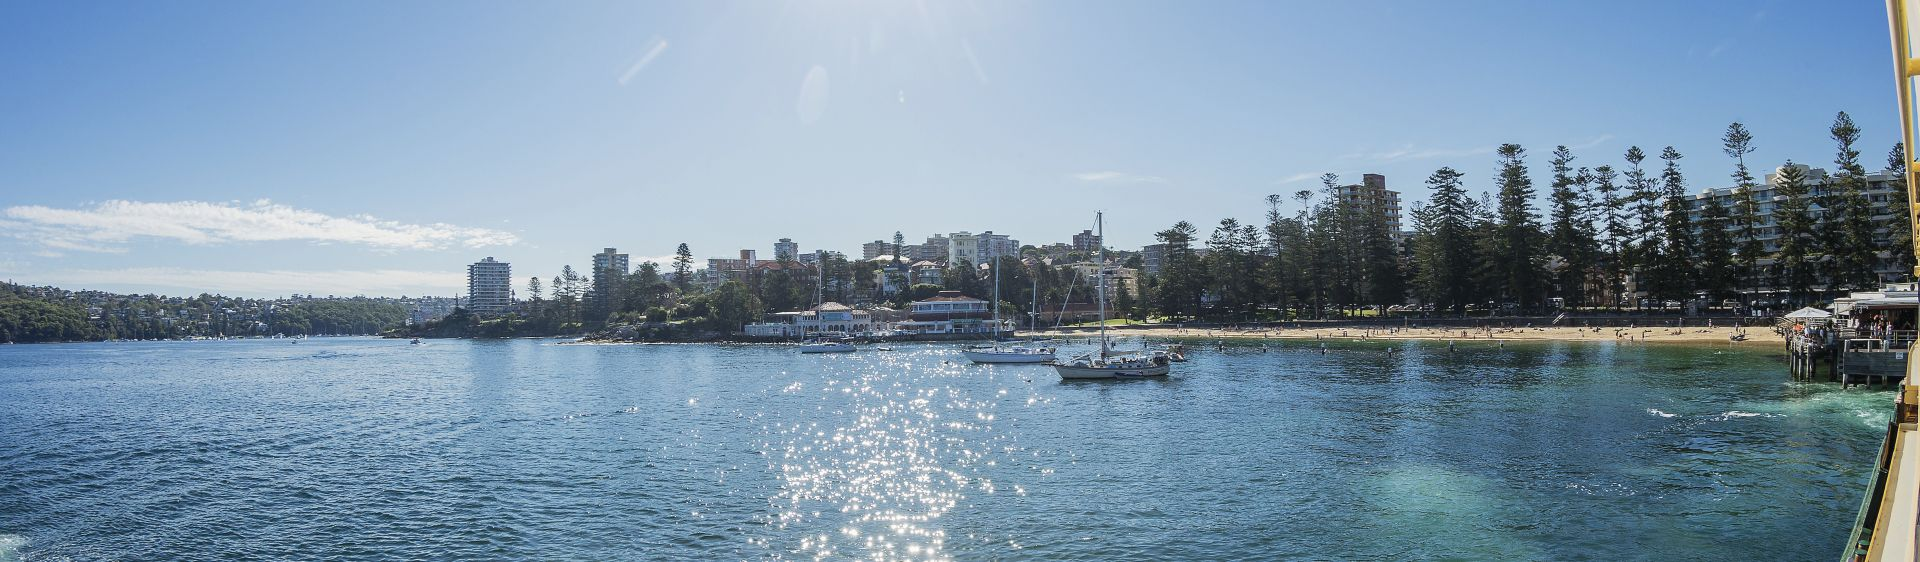 Ferry pulling into Manly Cove.